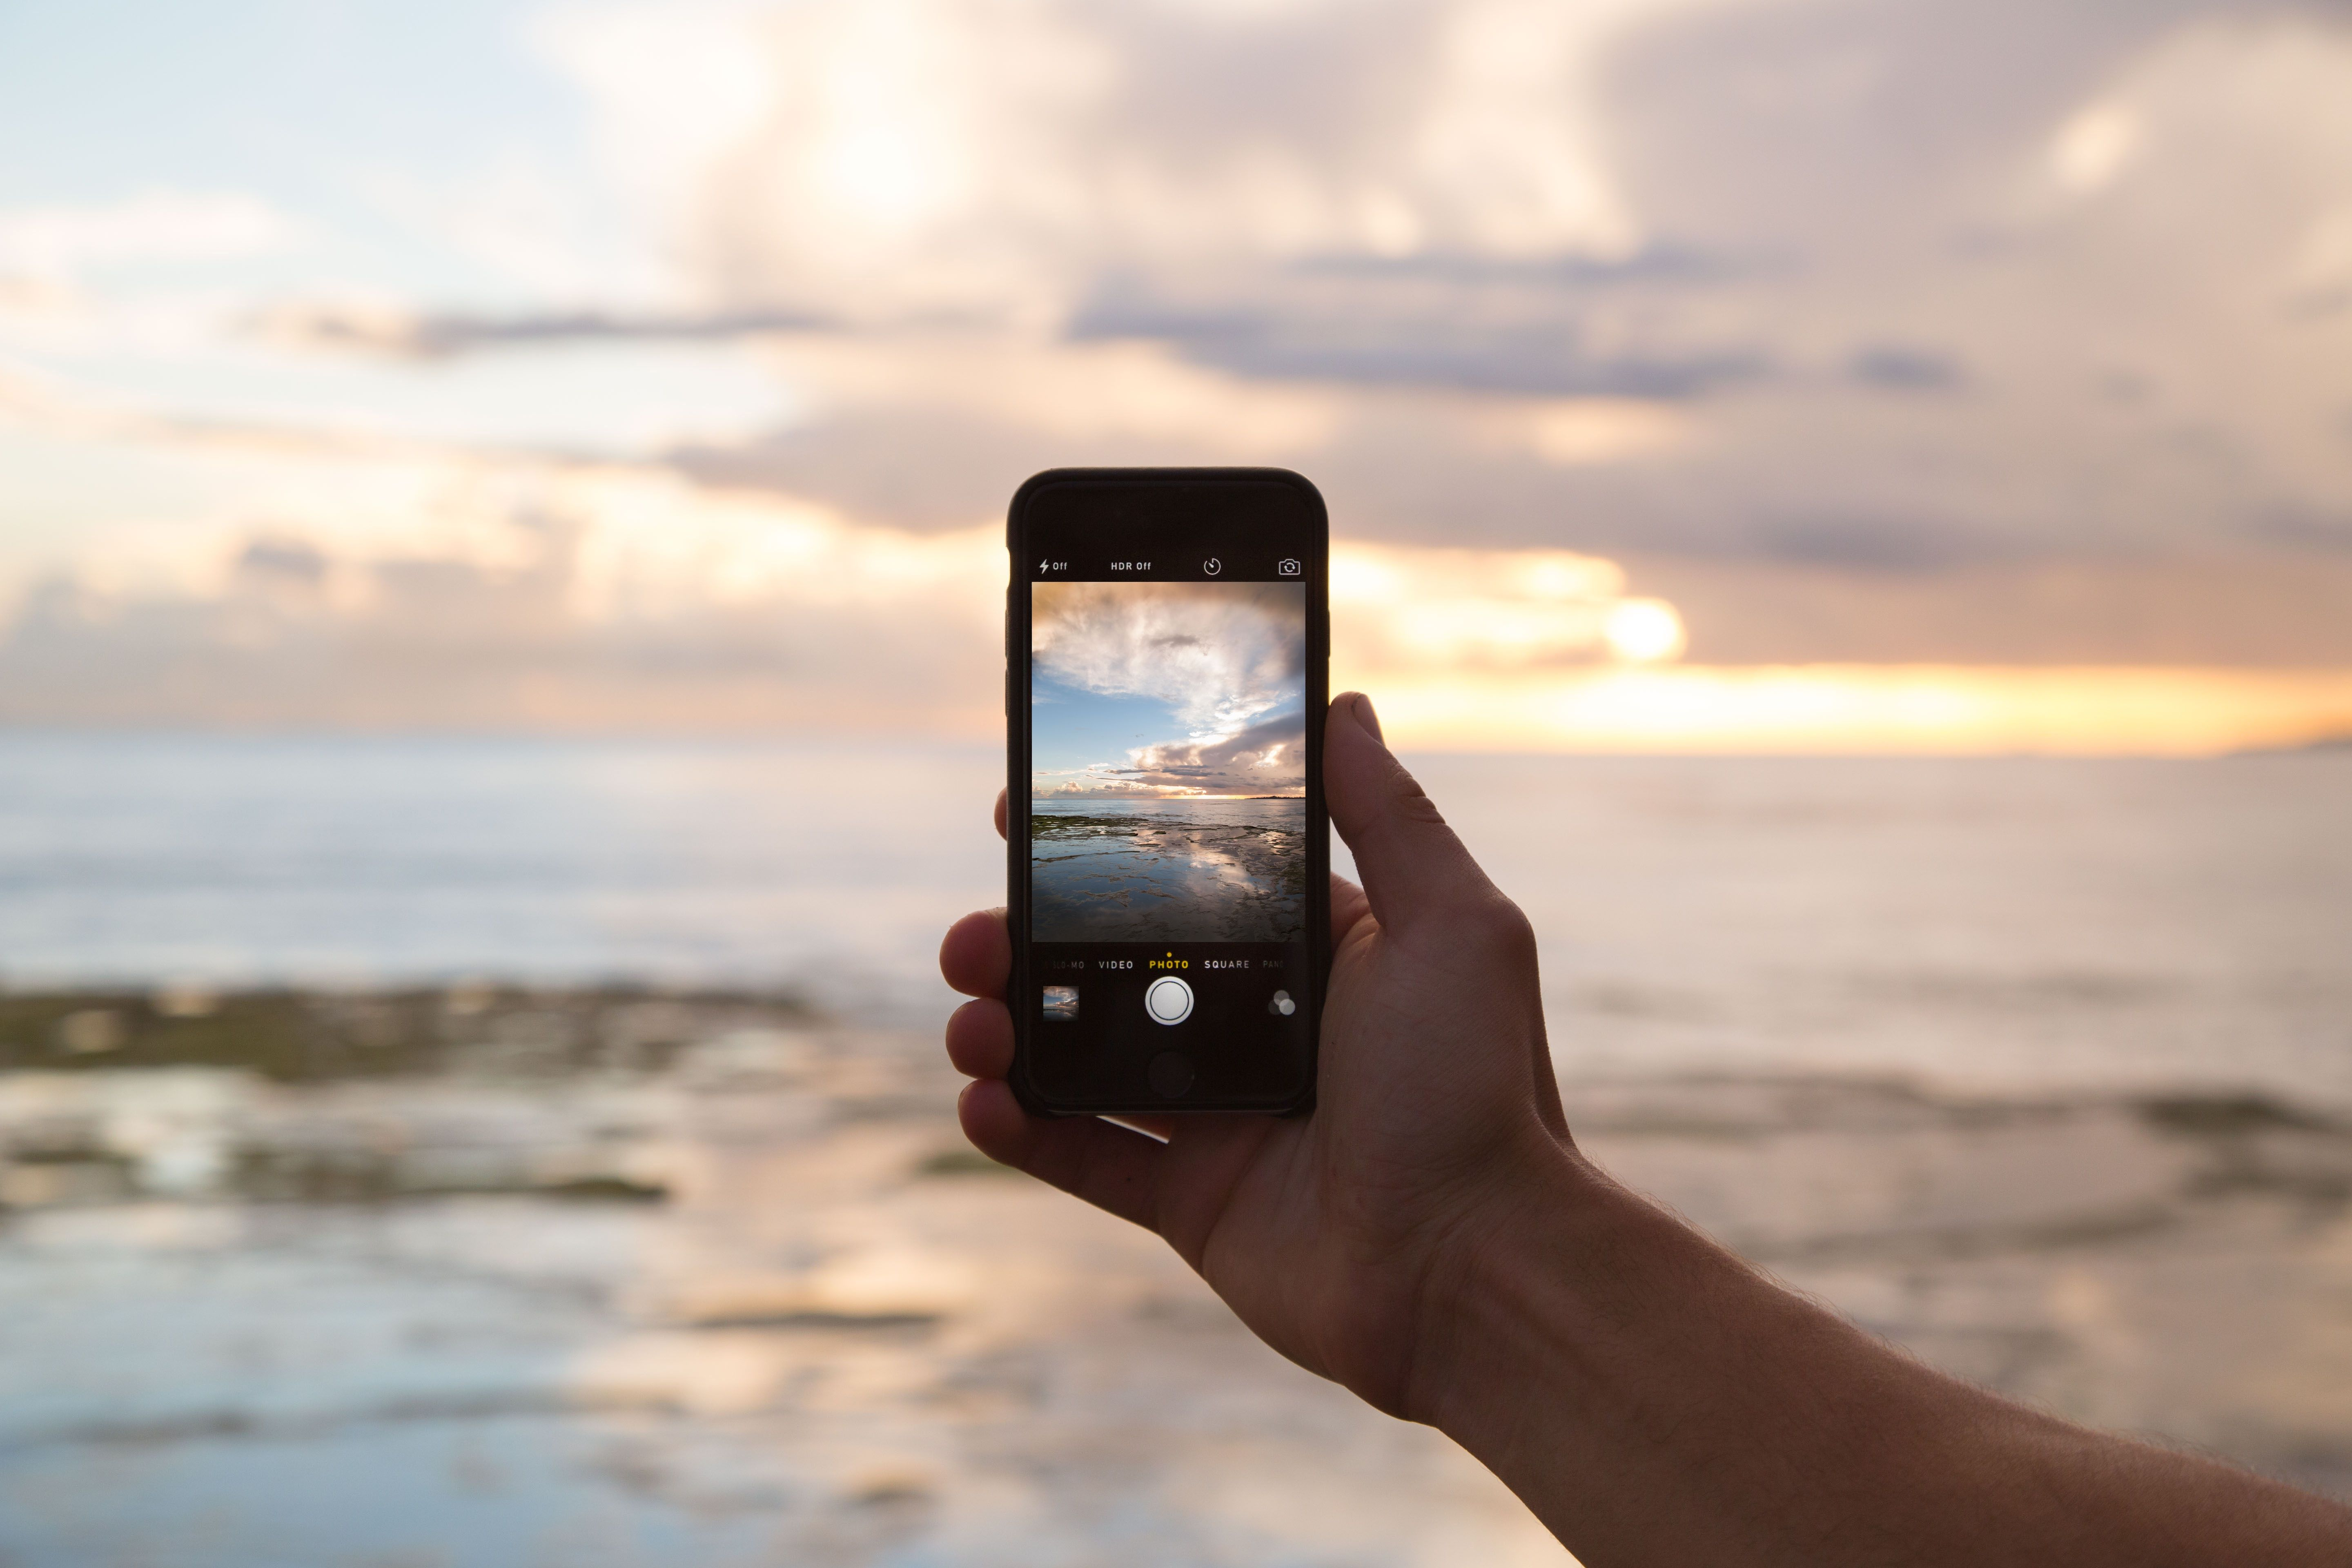 How To Take Better Pictures With Your Phone Cameras And Photography - Smartphones mean you dont need a fancy camera to take an amazing photo